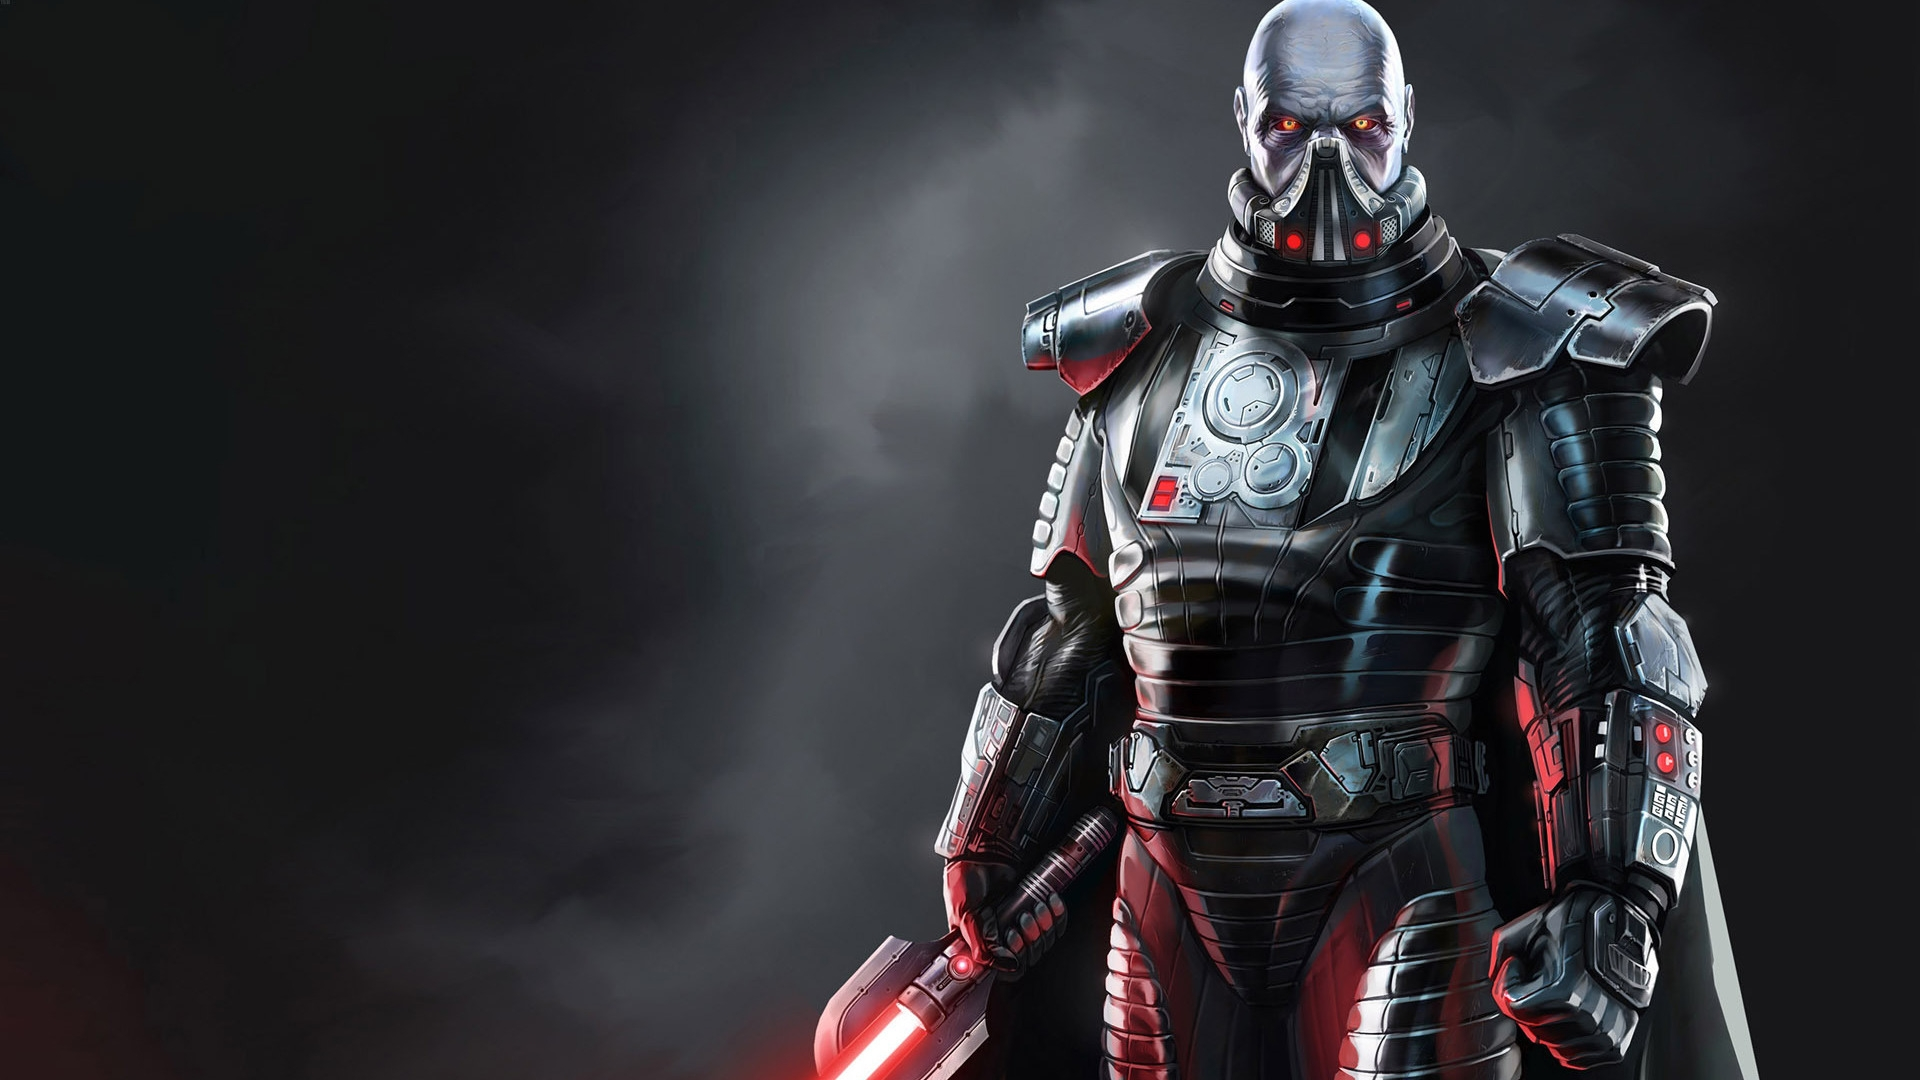 Star Wars The Old Republic – Sith Warrior widescreen wallpaper